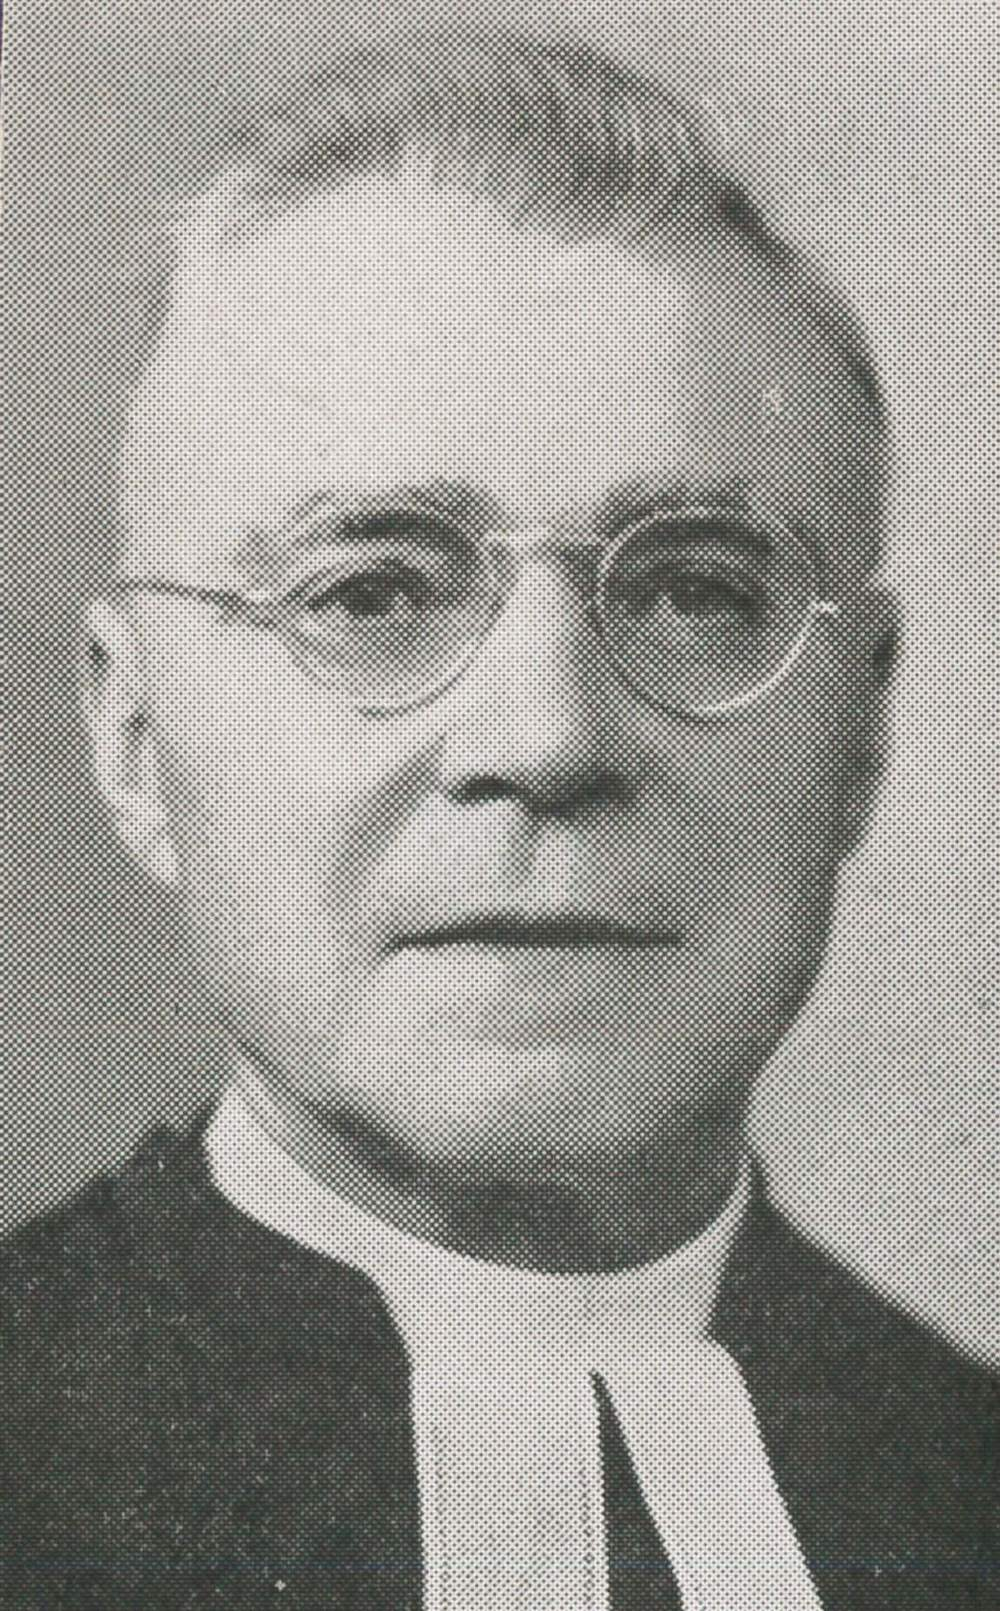 Rev. H. W. Ellenberger